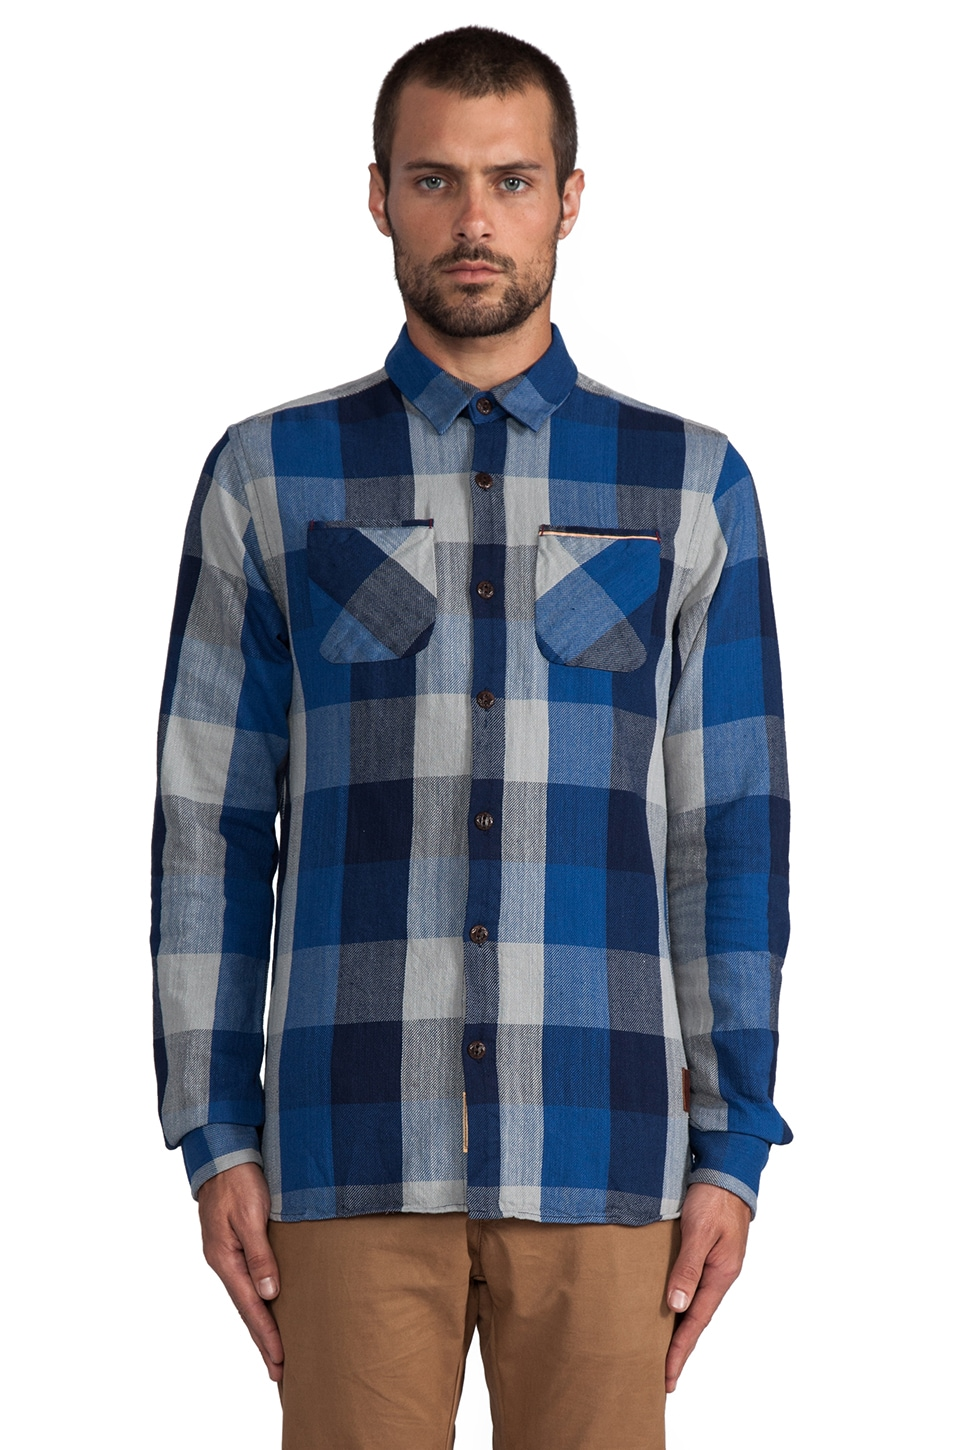 Scotch & Soda Flannel Block Check Shirt in Blue/Grey